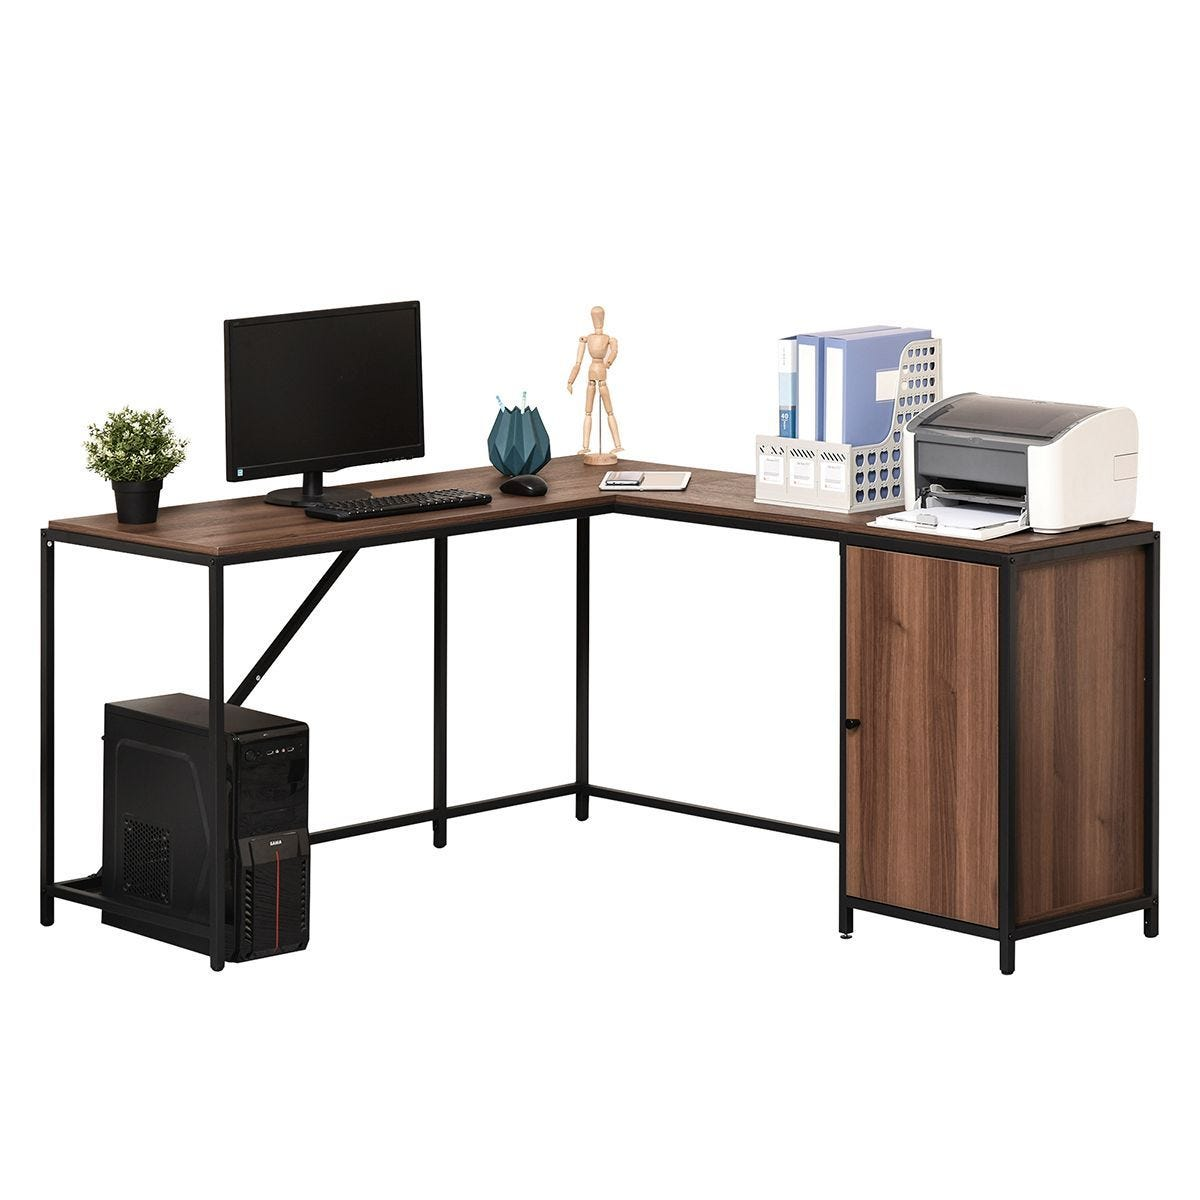 L Shape Computer Corner Desk PC Table Workstation With Cabinet for Home Office Walnut